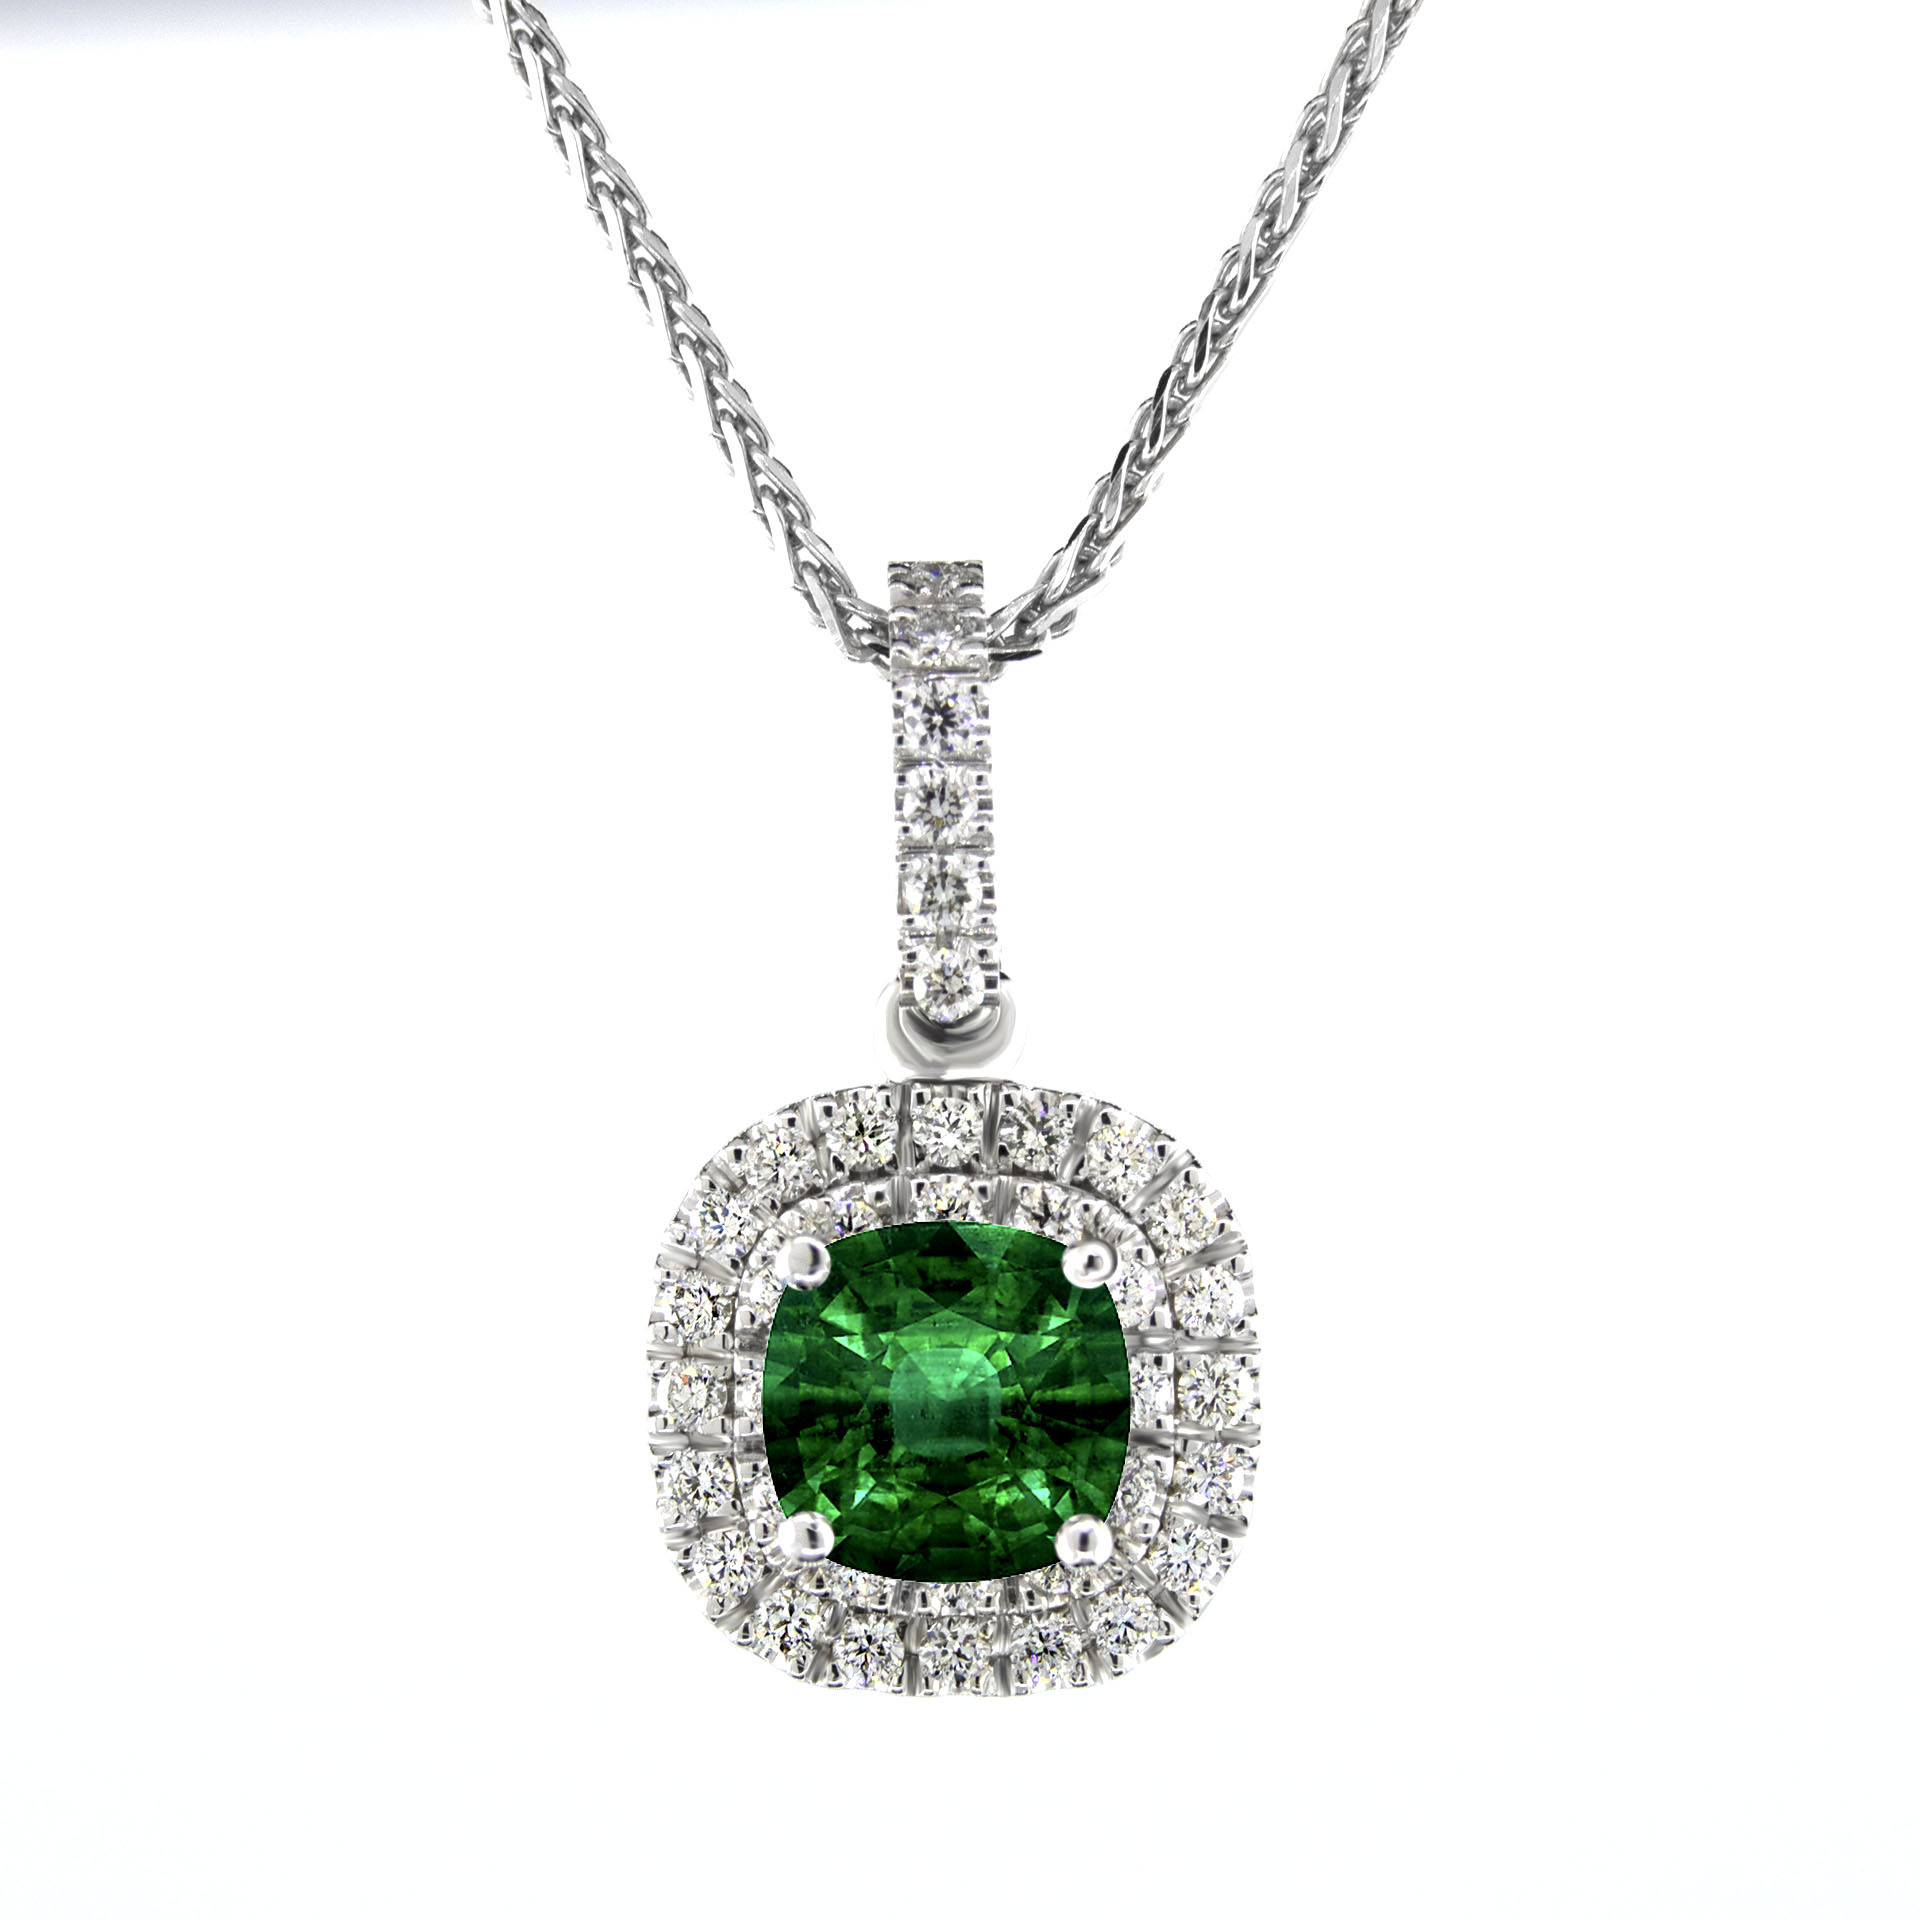 jewelers emerald pendant diamond jewelry and cut custom wixon